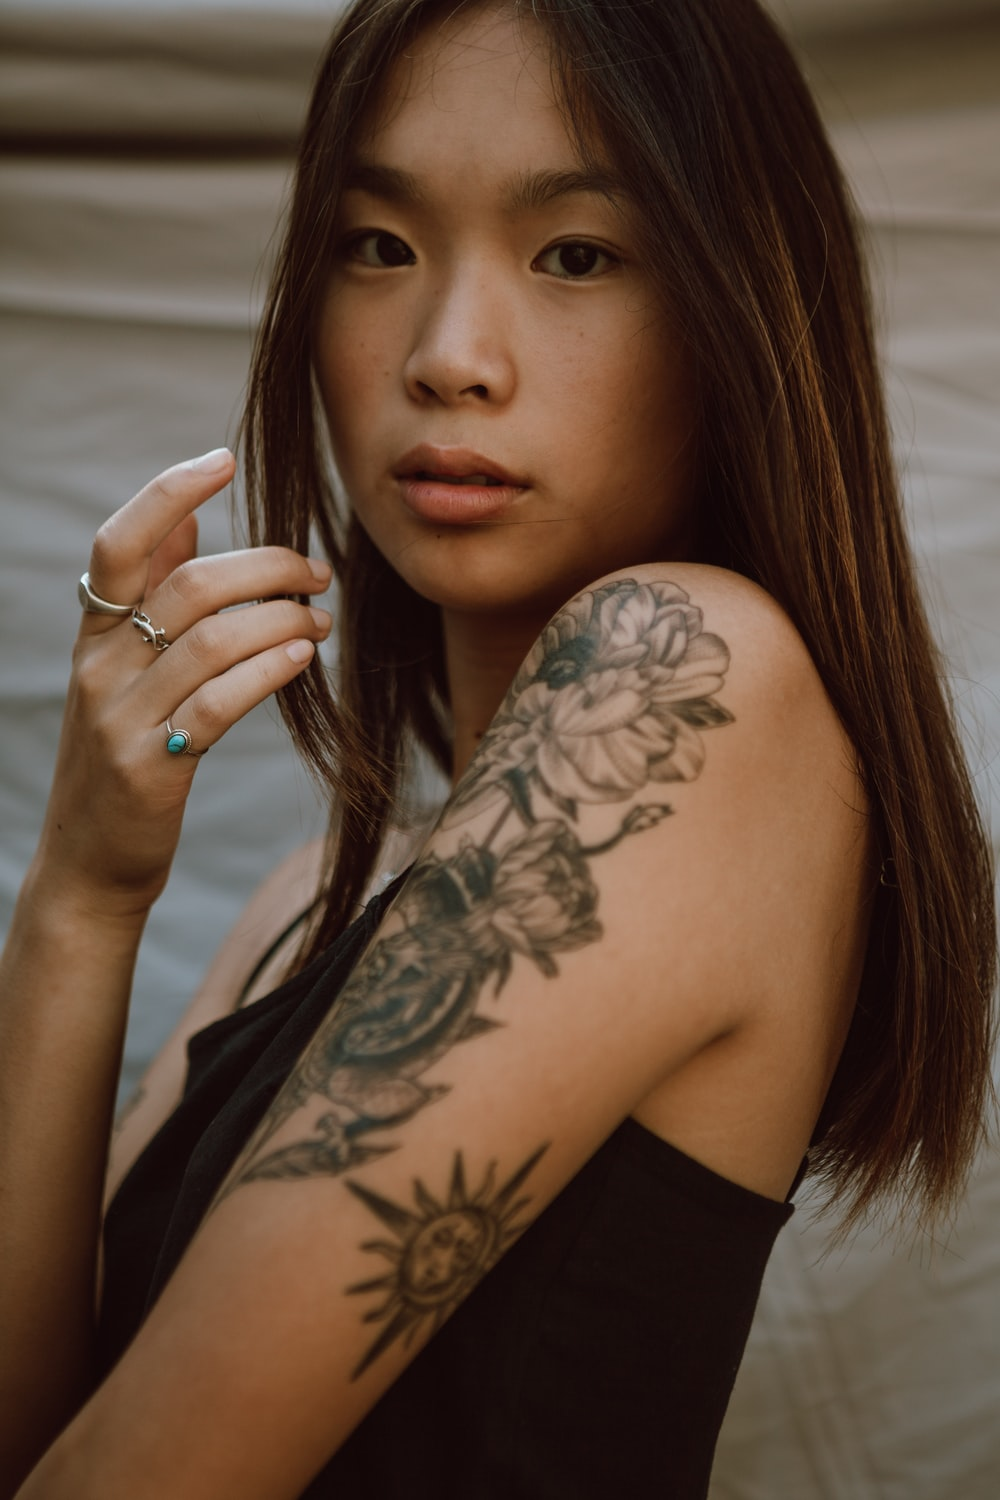 woman with black floral tattoo on her left arm